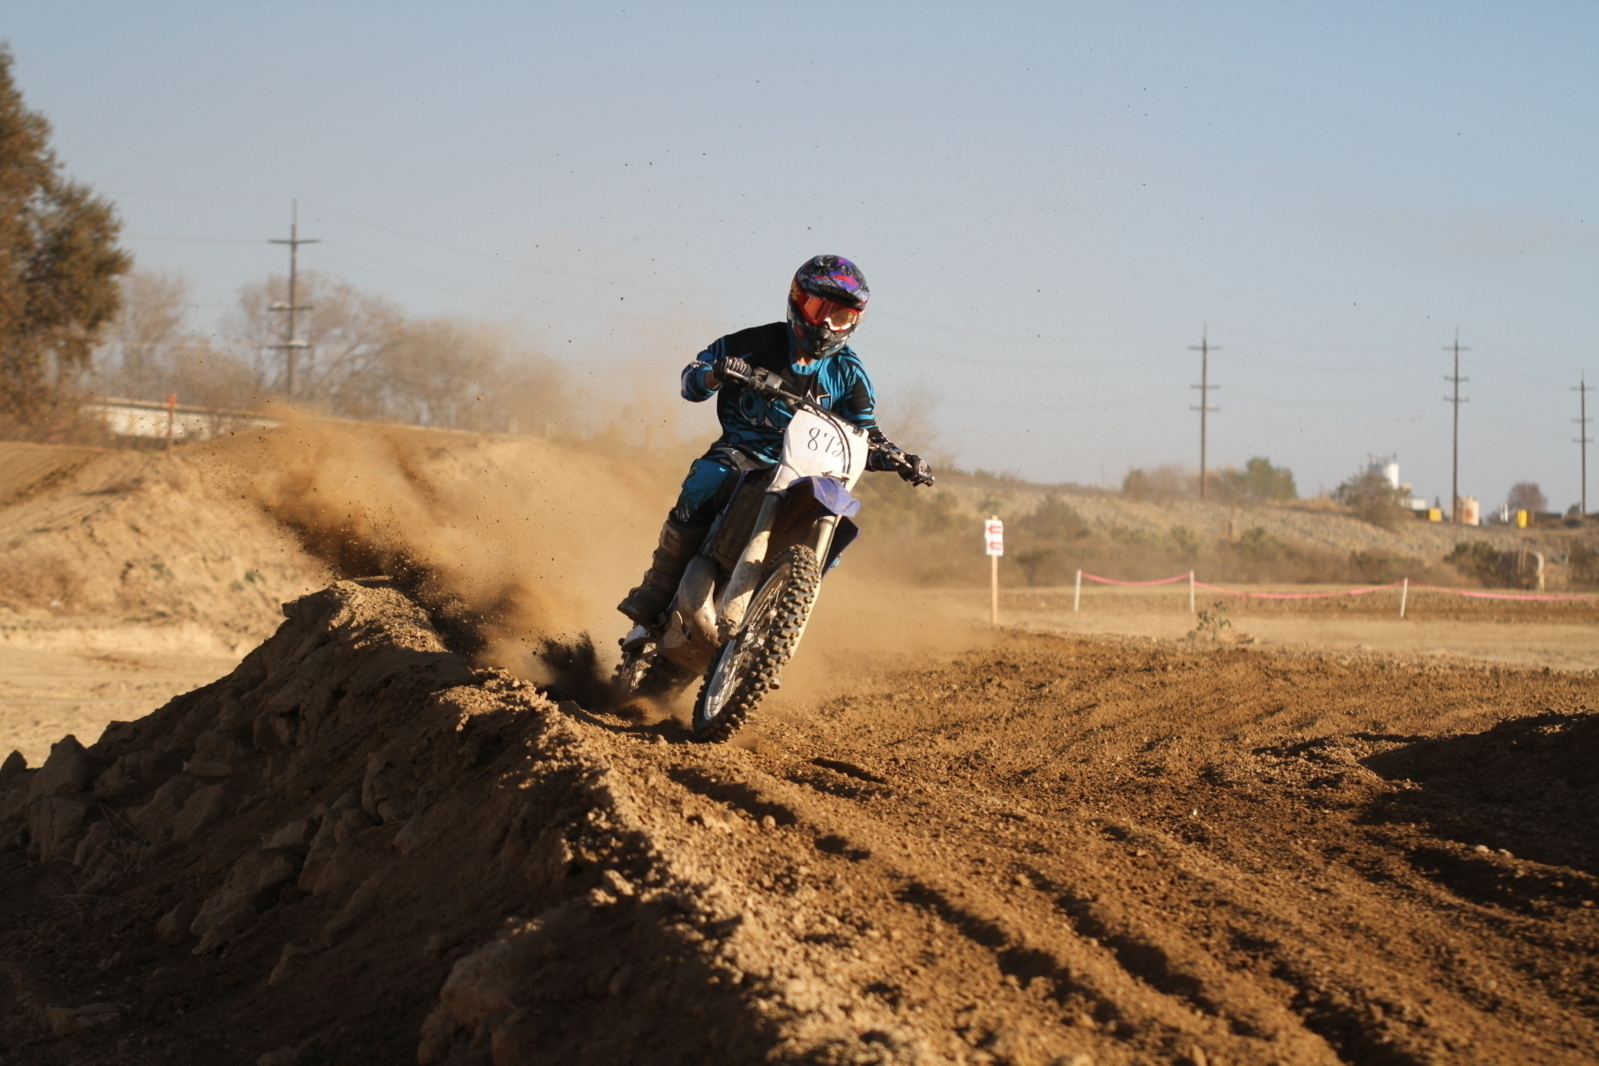 Photos from last weekend at MMX HS | South Bay Riders